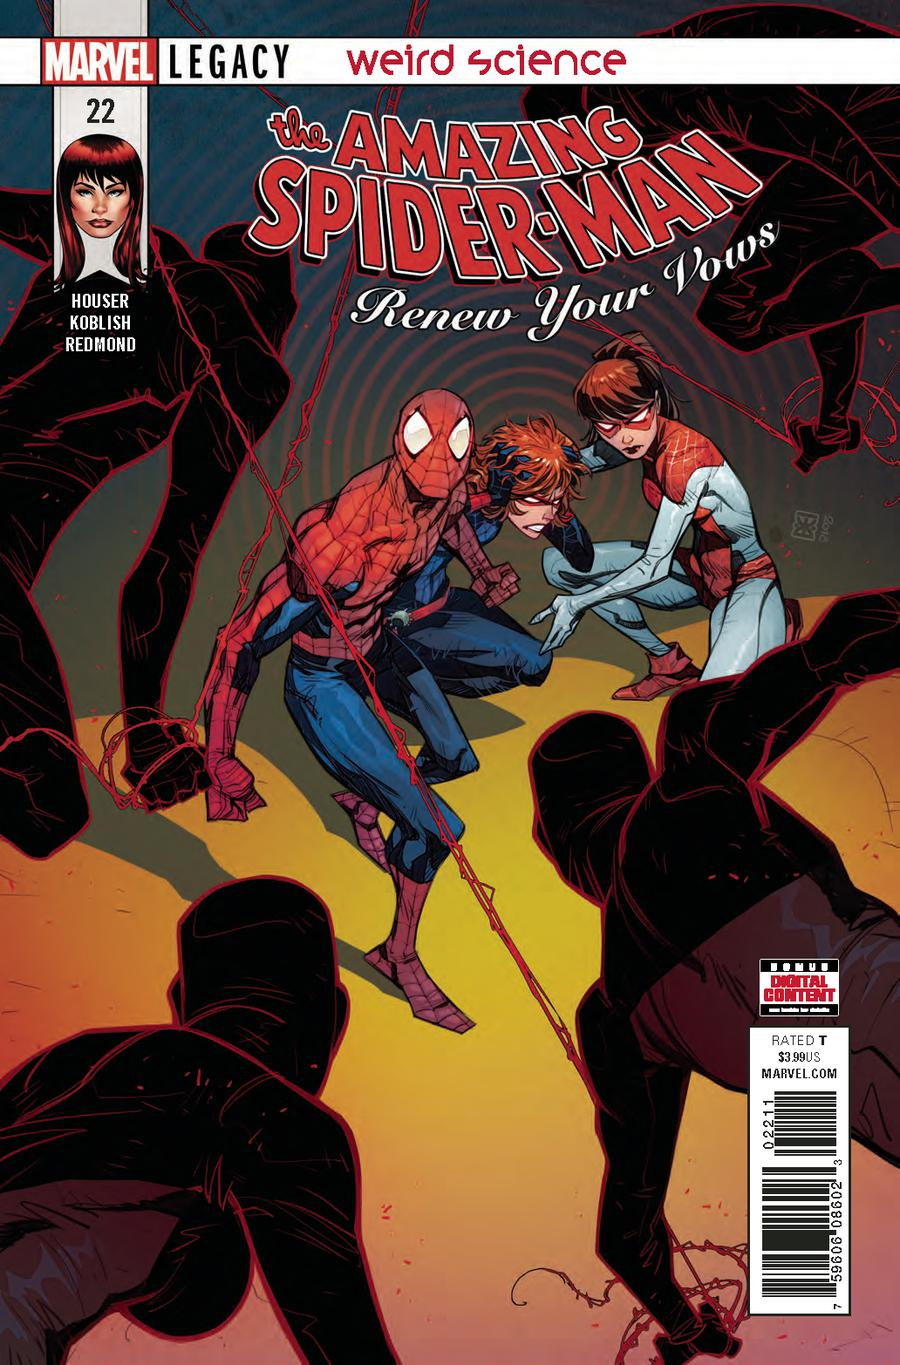 Amazing Spider-Man Renew Your Vows Vol 2 #22